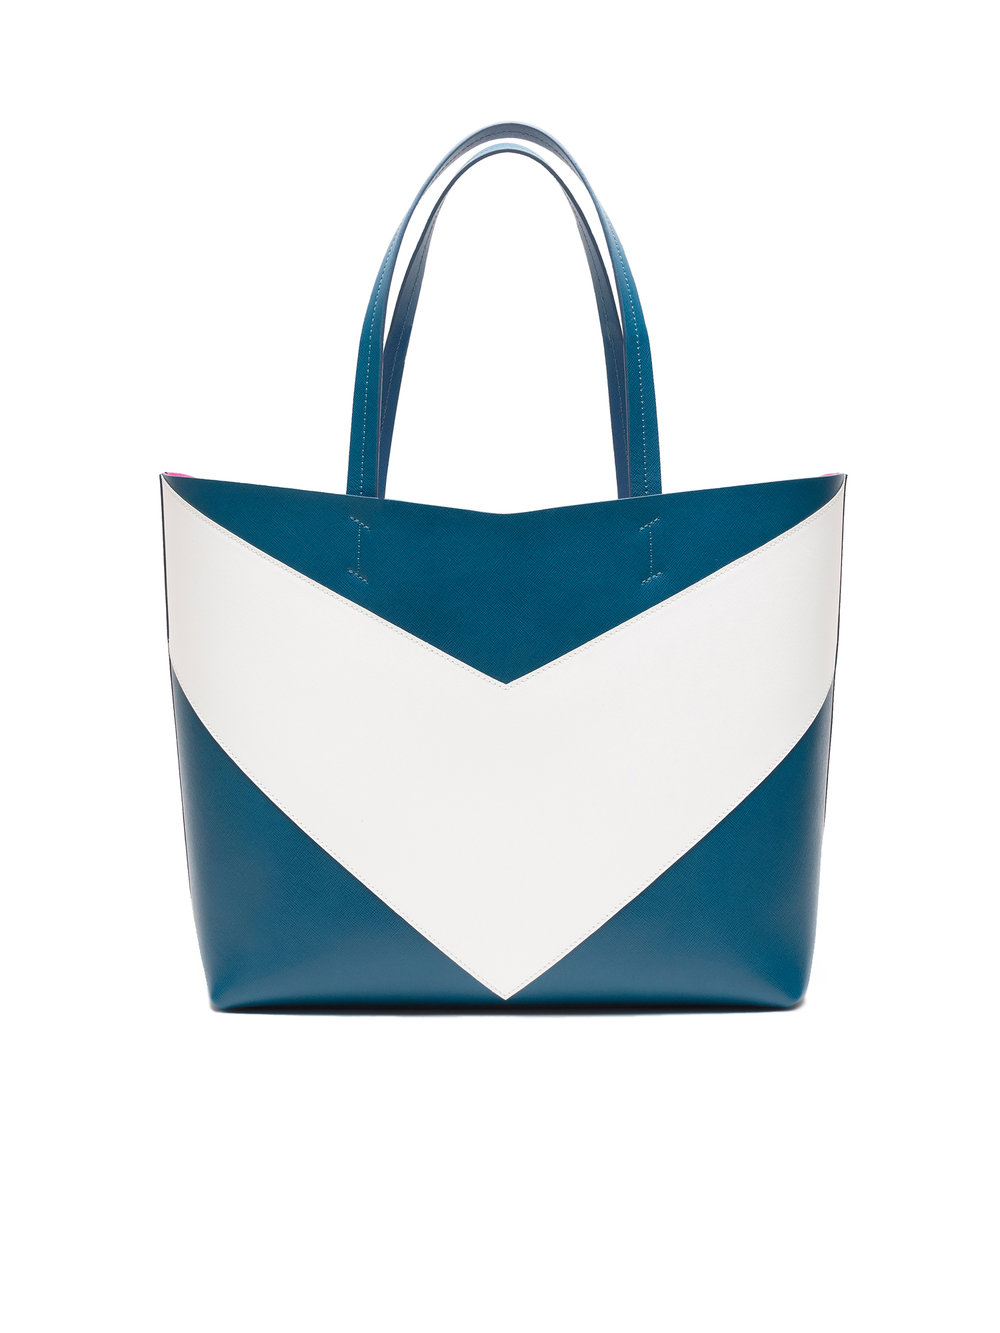 Pragmantica L - Petrol/White - Petrol saffiano leather & white saffiano leatherCyclamen suede interior with Two Internal pocket W 40 x H 30 x D 16,5 cm